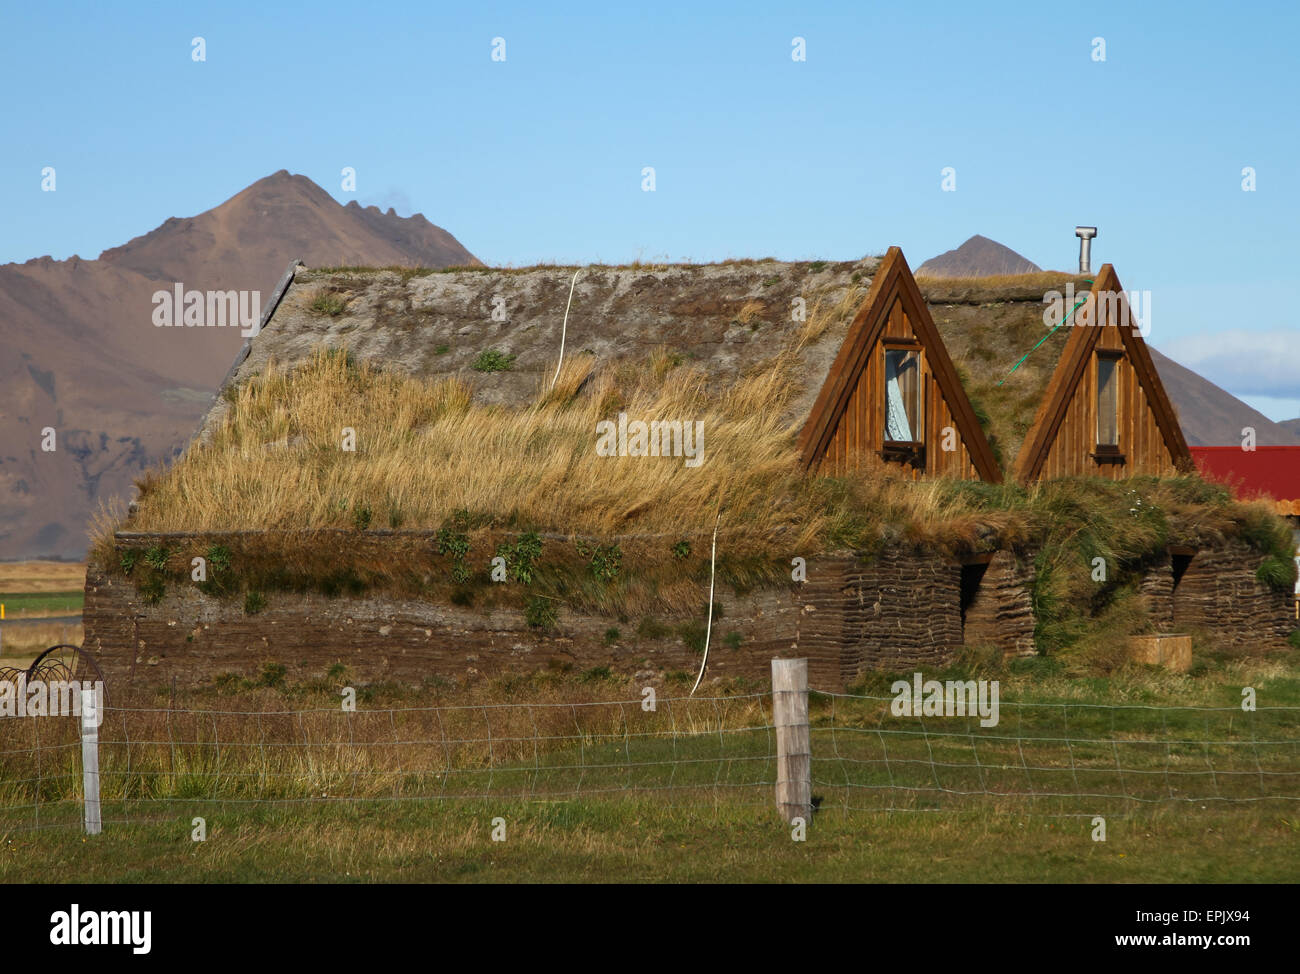 Farm Buildings In Iceland Highland House, Farm, Landscape, Old, Thatched,  Skye, Sky, Grass, Building, Rural, Vintage, Blue, Cott